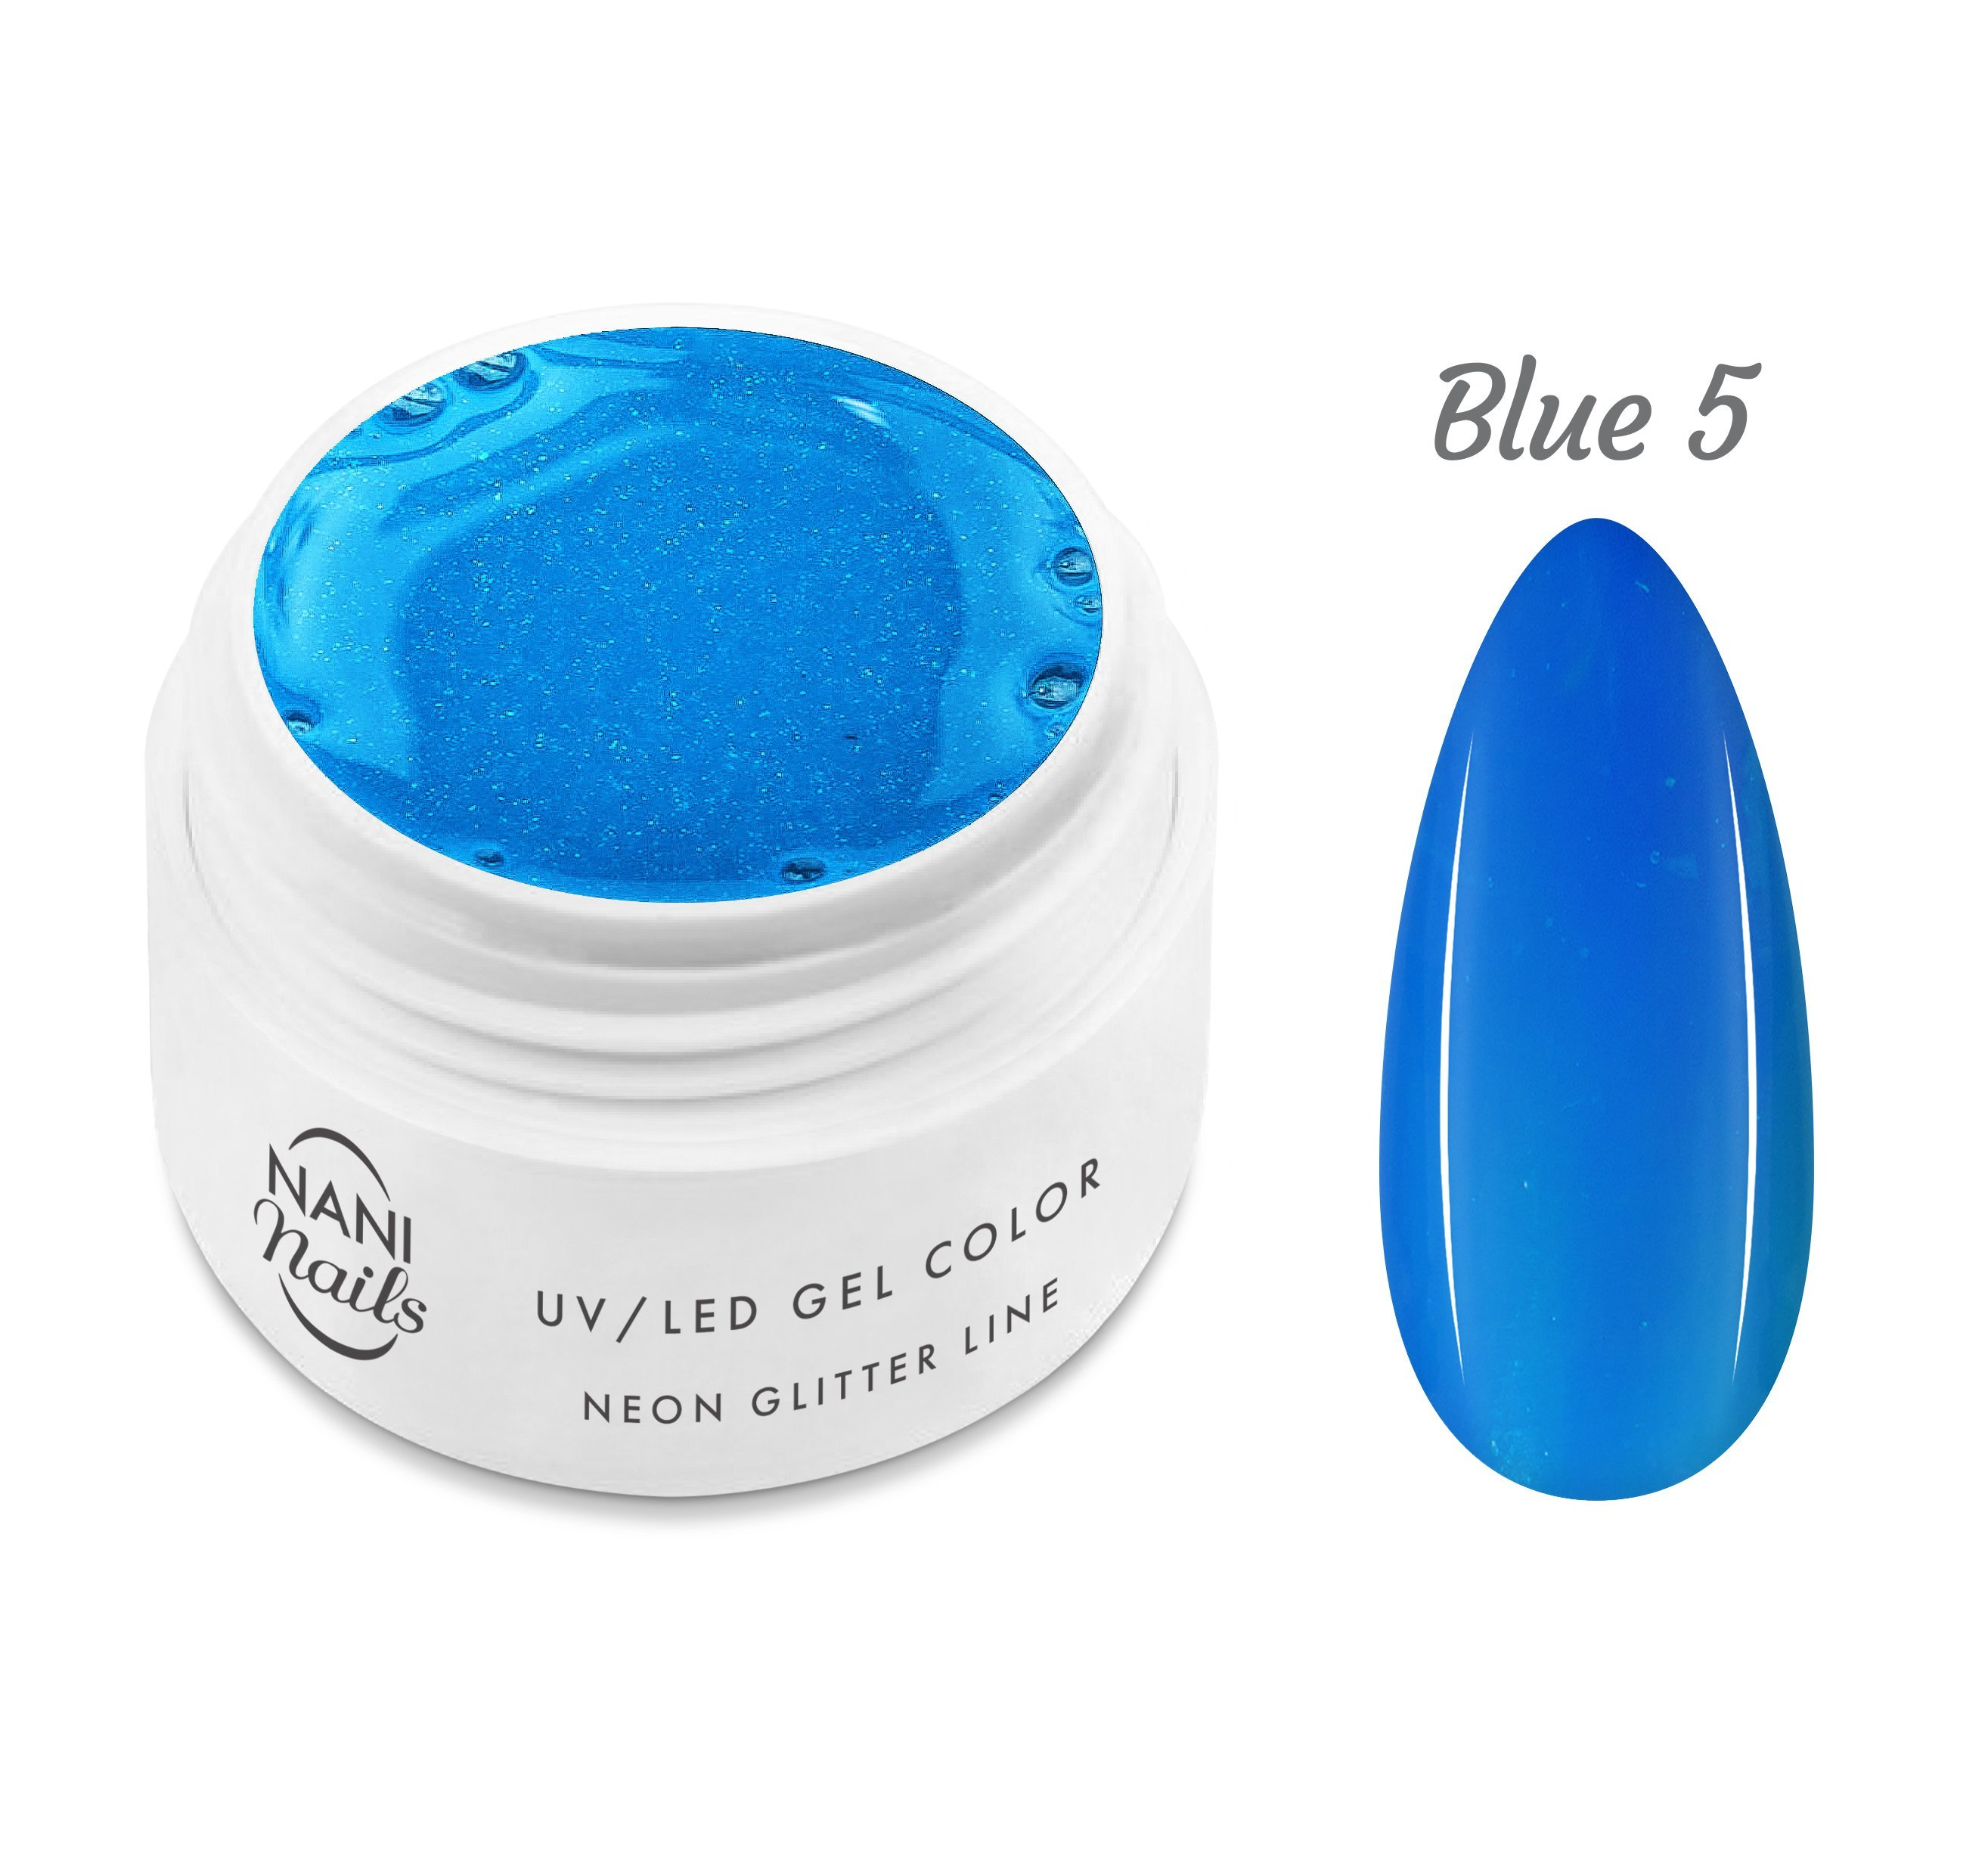 NANI UV gél Neon Glitter Line 5 ml - Blue